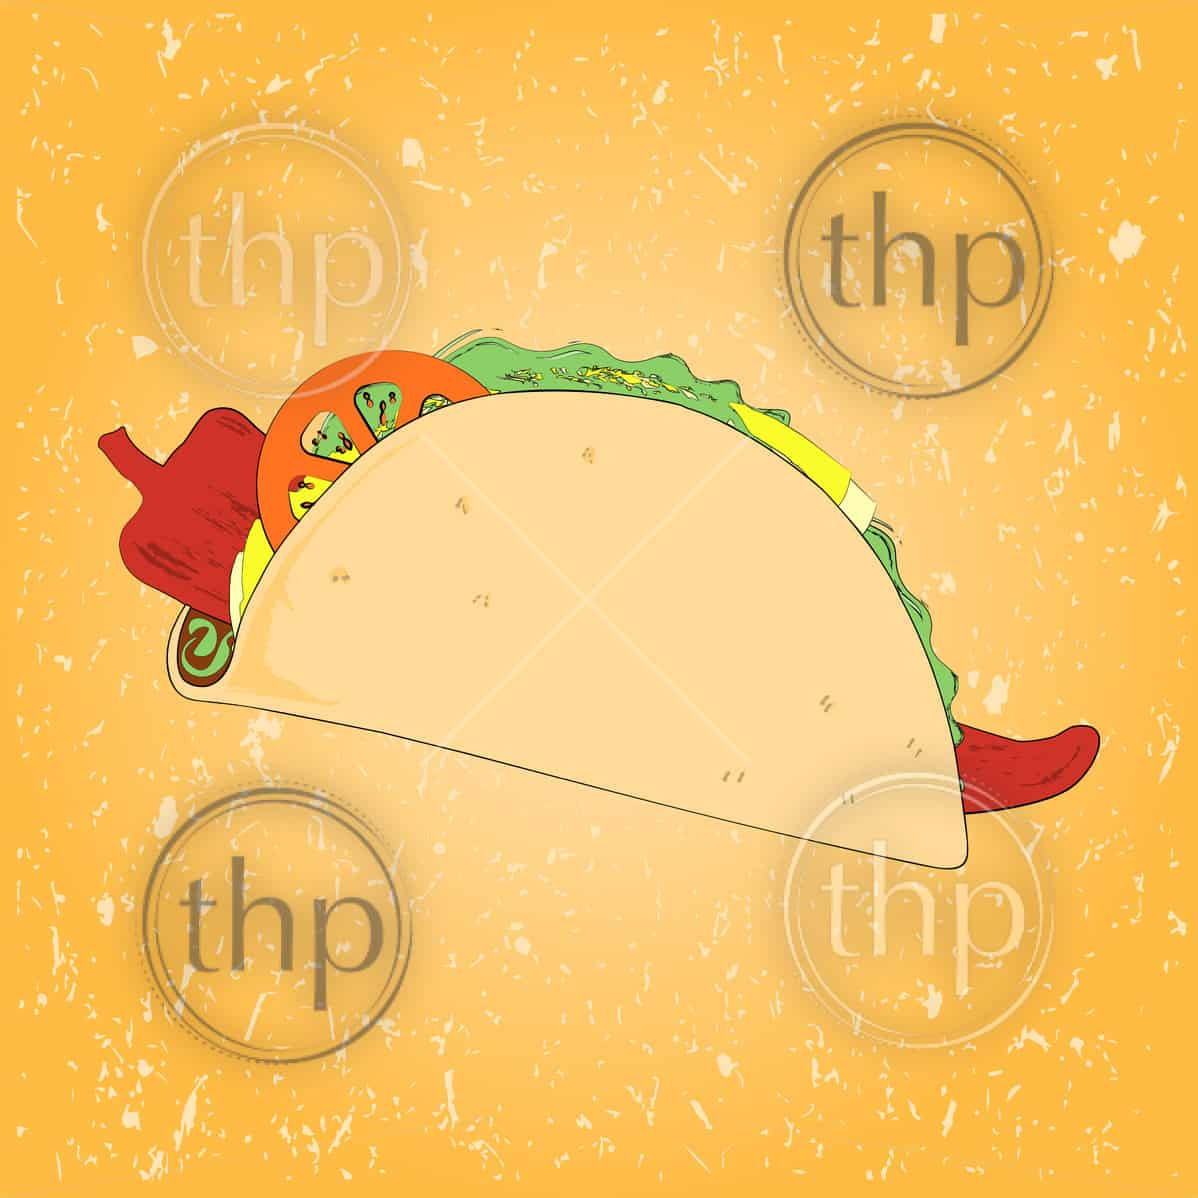 Mexico style taco sketch vector with texture